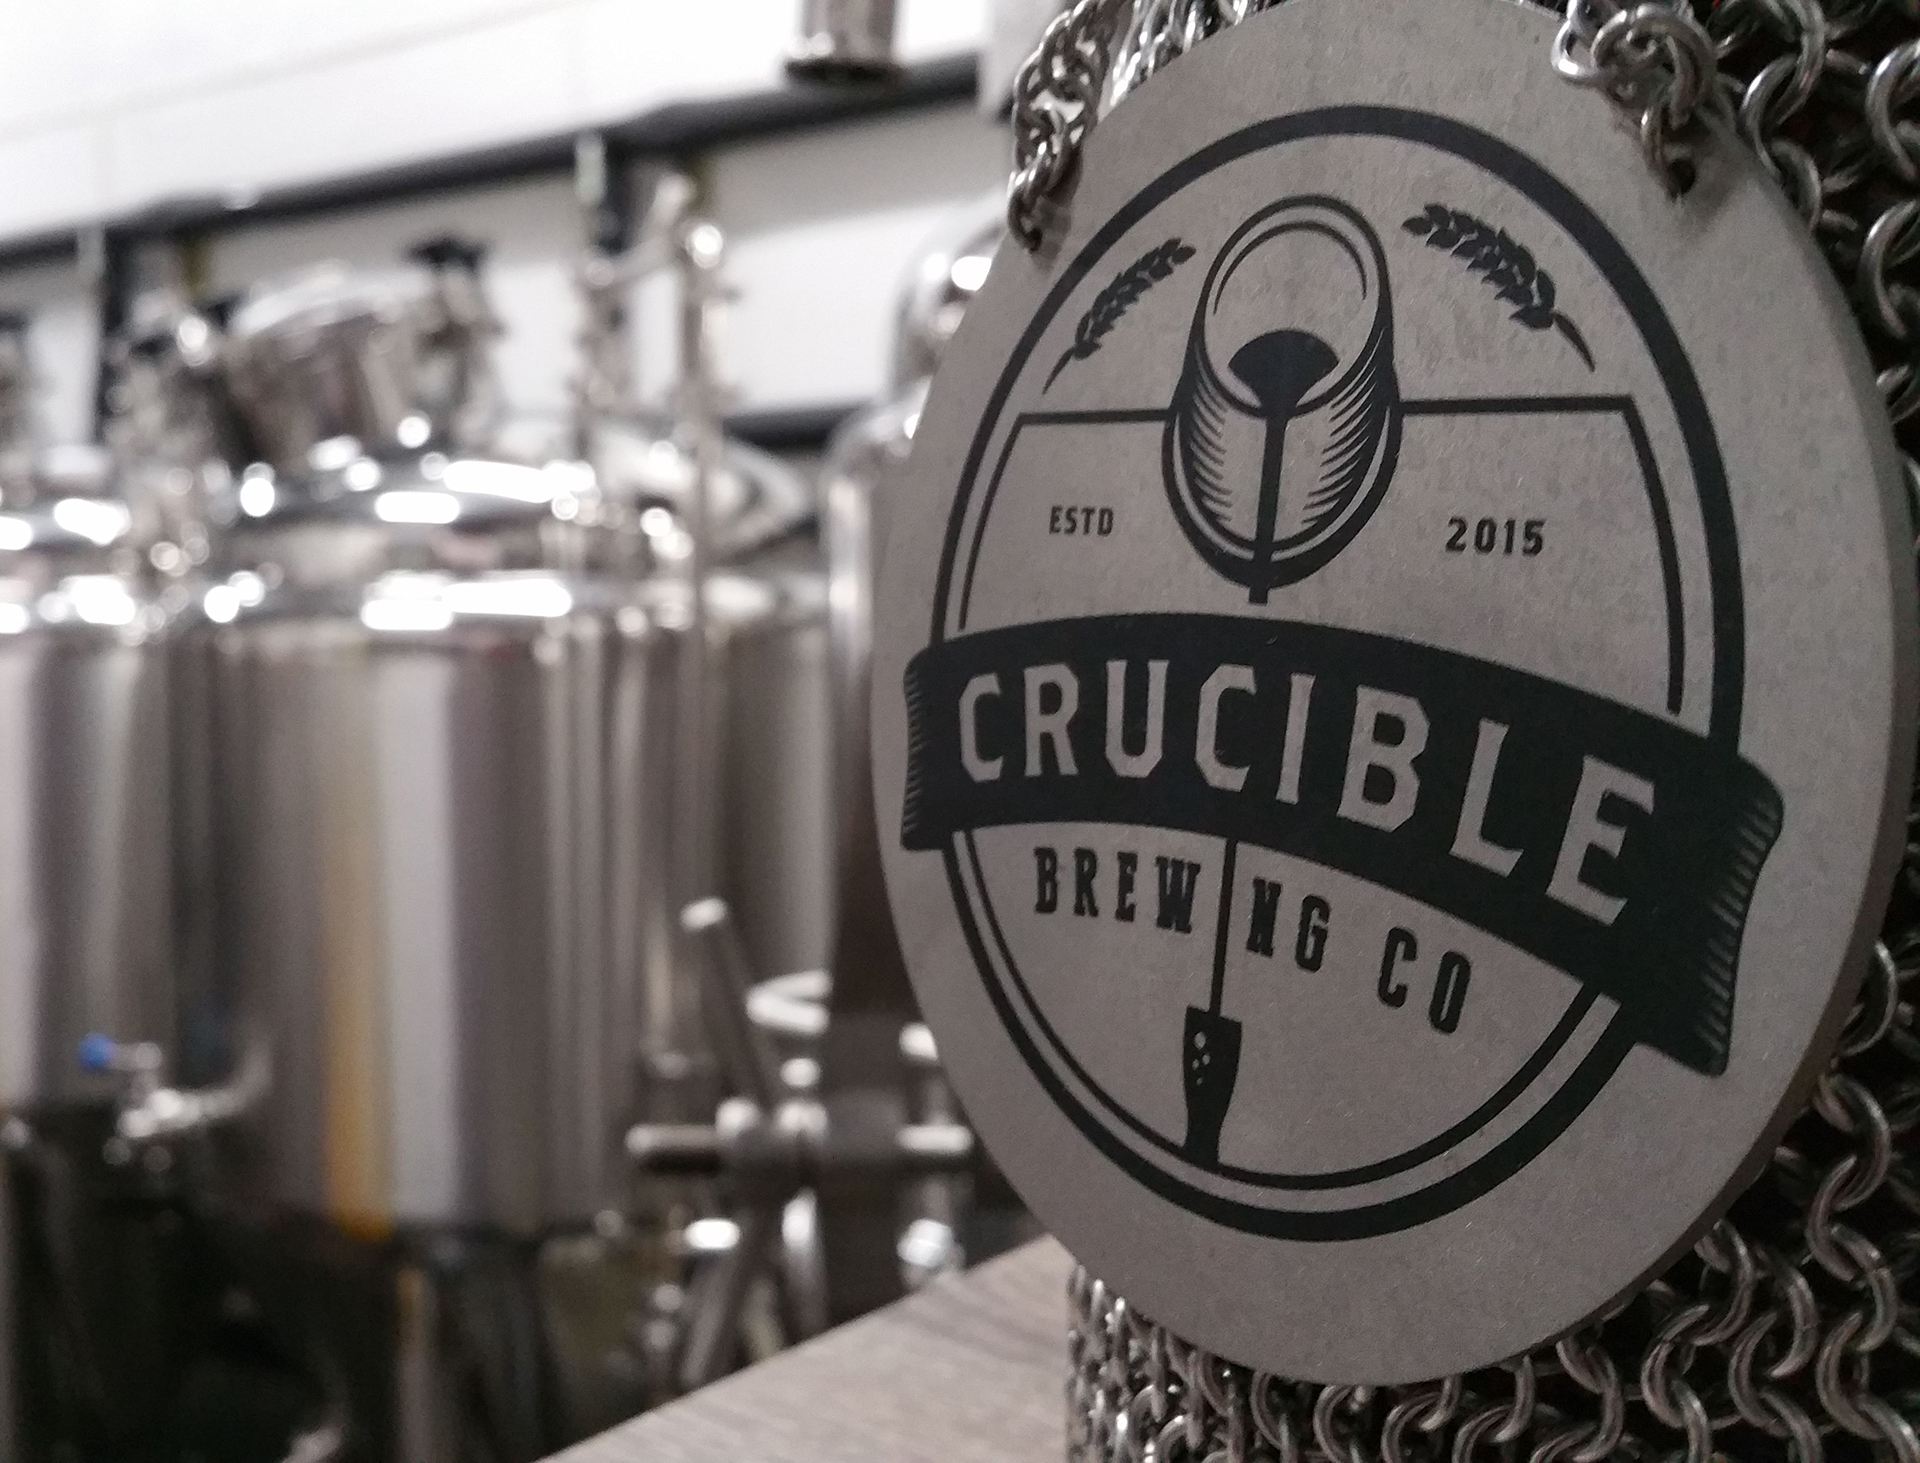 Crucible Brewing